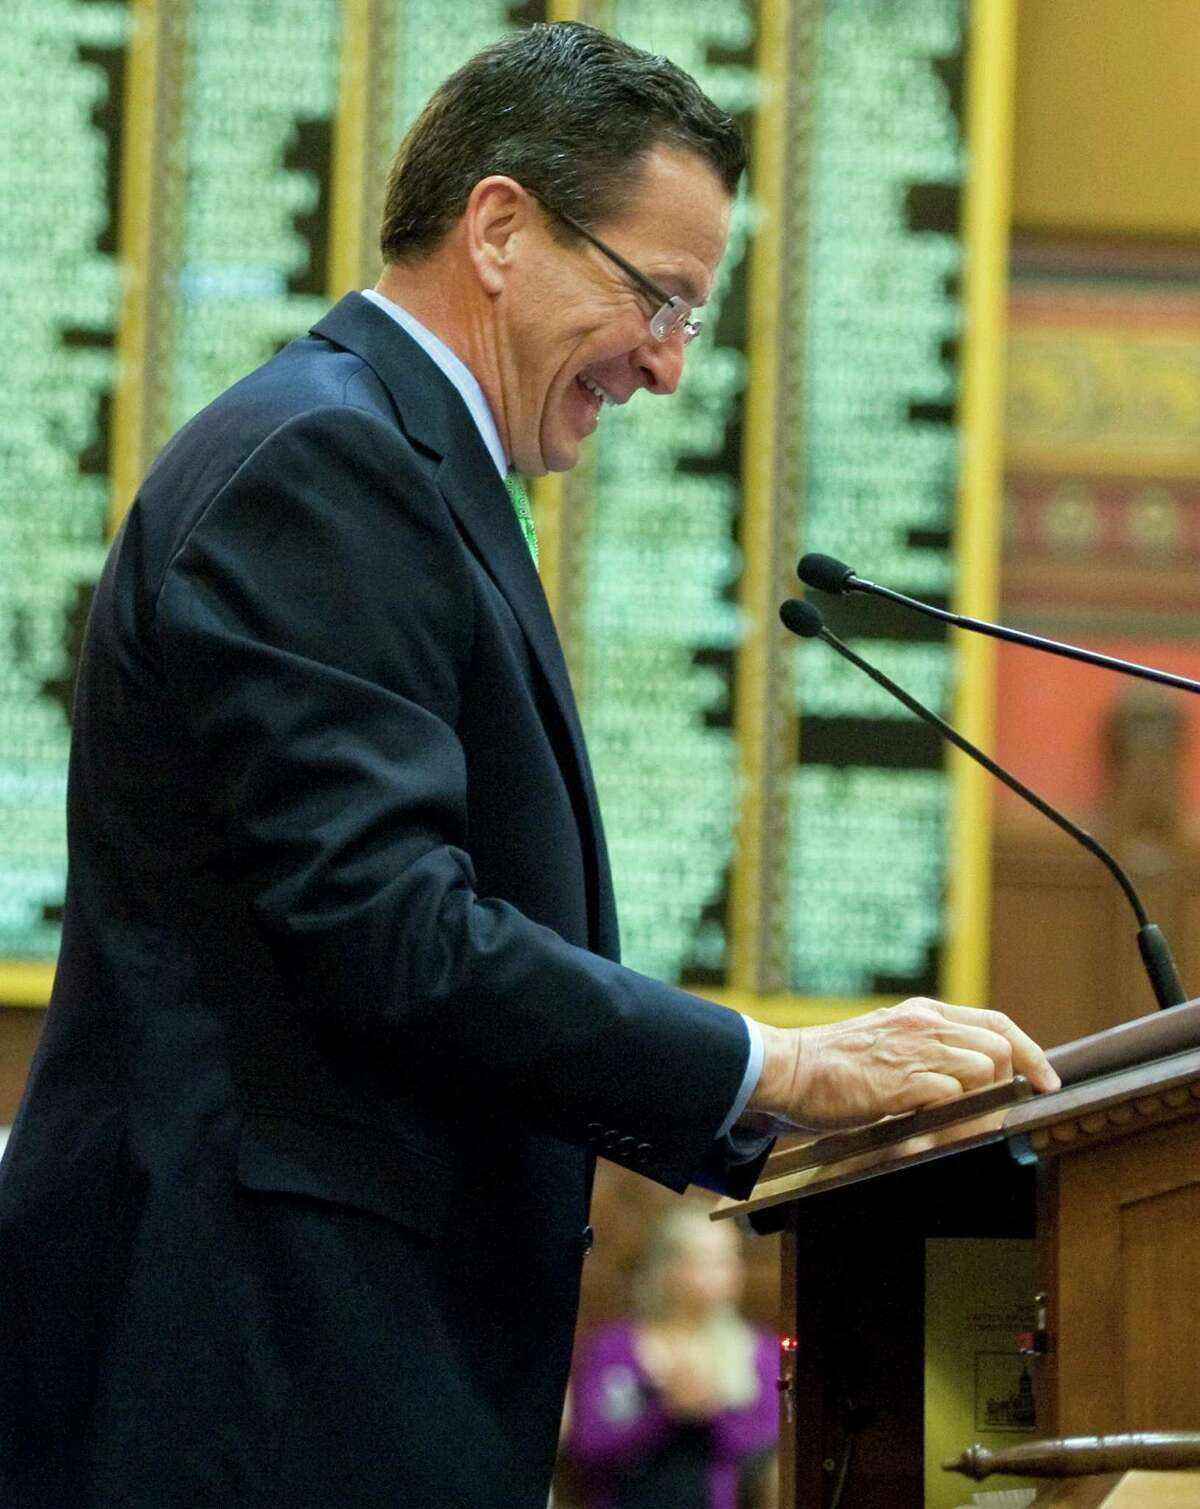 Gov. Dannel P. Malloy smiles as he addresses General Assembly at the end of session the Capitol in Hartford, Conn., Thursday, May 10, 2012. The session resolved several high-profile, perennial issues including the state's death penalty, medical marijuana usage and Sunday alcohol sales.